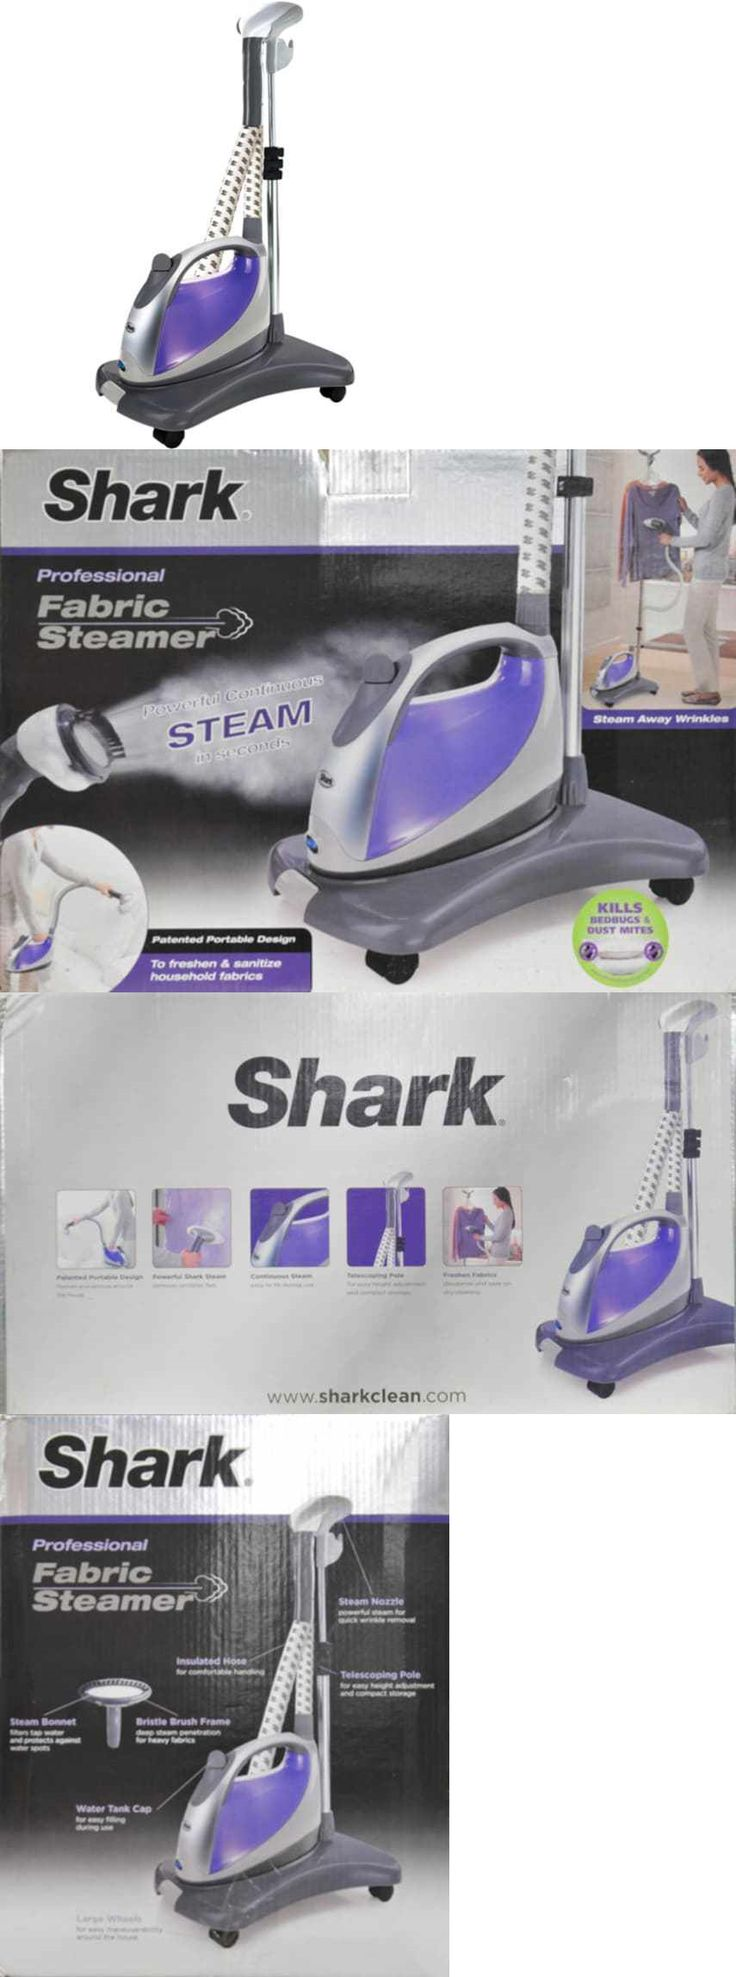 Garment Steamers 43514: Shark Garment Stand Fabric Steamer Portable Steam Clothes Wrinkles Gs300 New Usa -> BUY IT NOW ONLY: $62.81 on eBay!